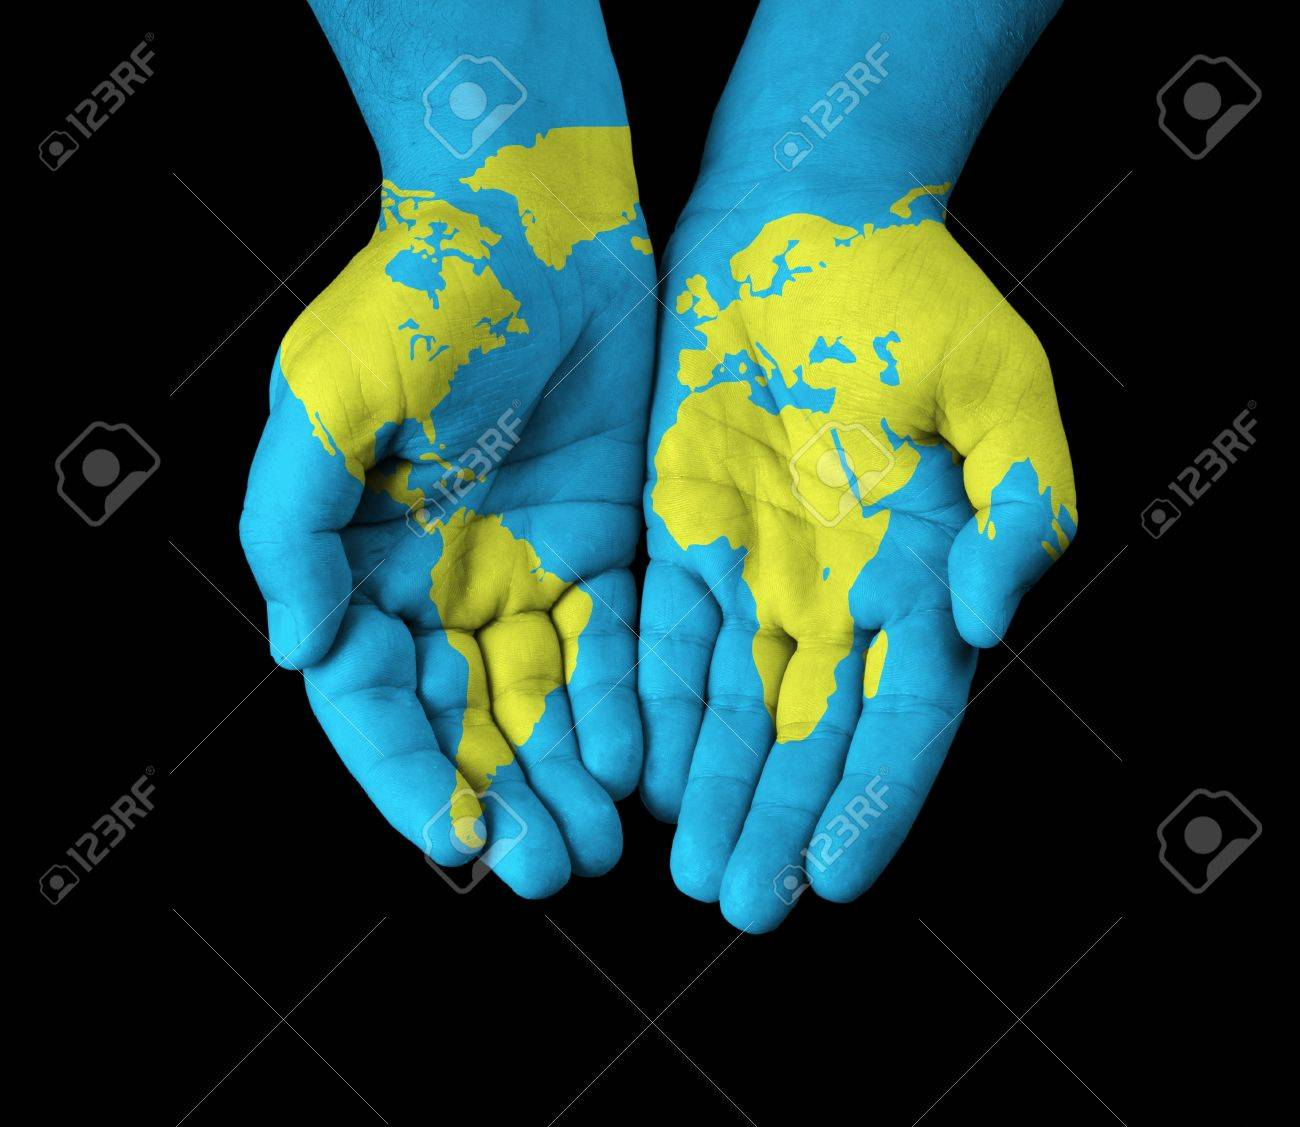 World map painted on hands stock photo picture and royalty free world map painted on hands stock photo 20613834 gumiabroncs Images